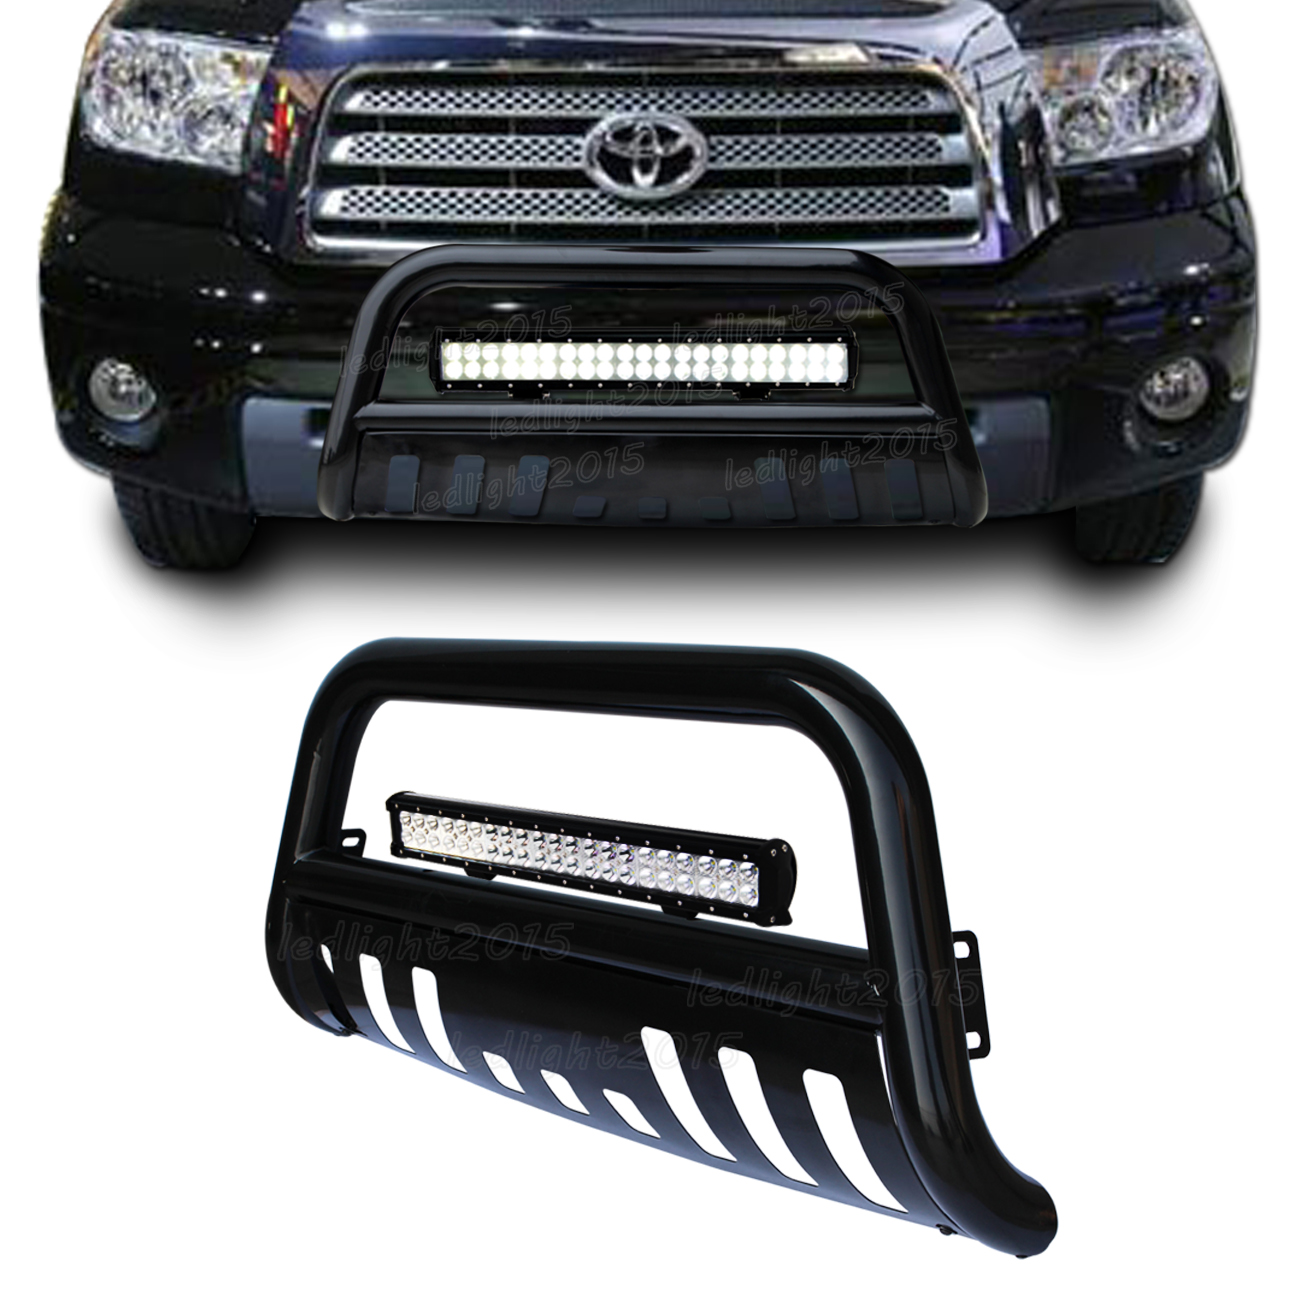 Black Bull Bar Brush Bumper Grille Guard 126w Led Light